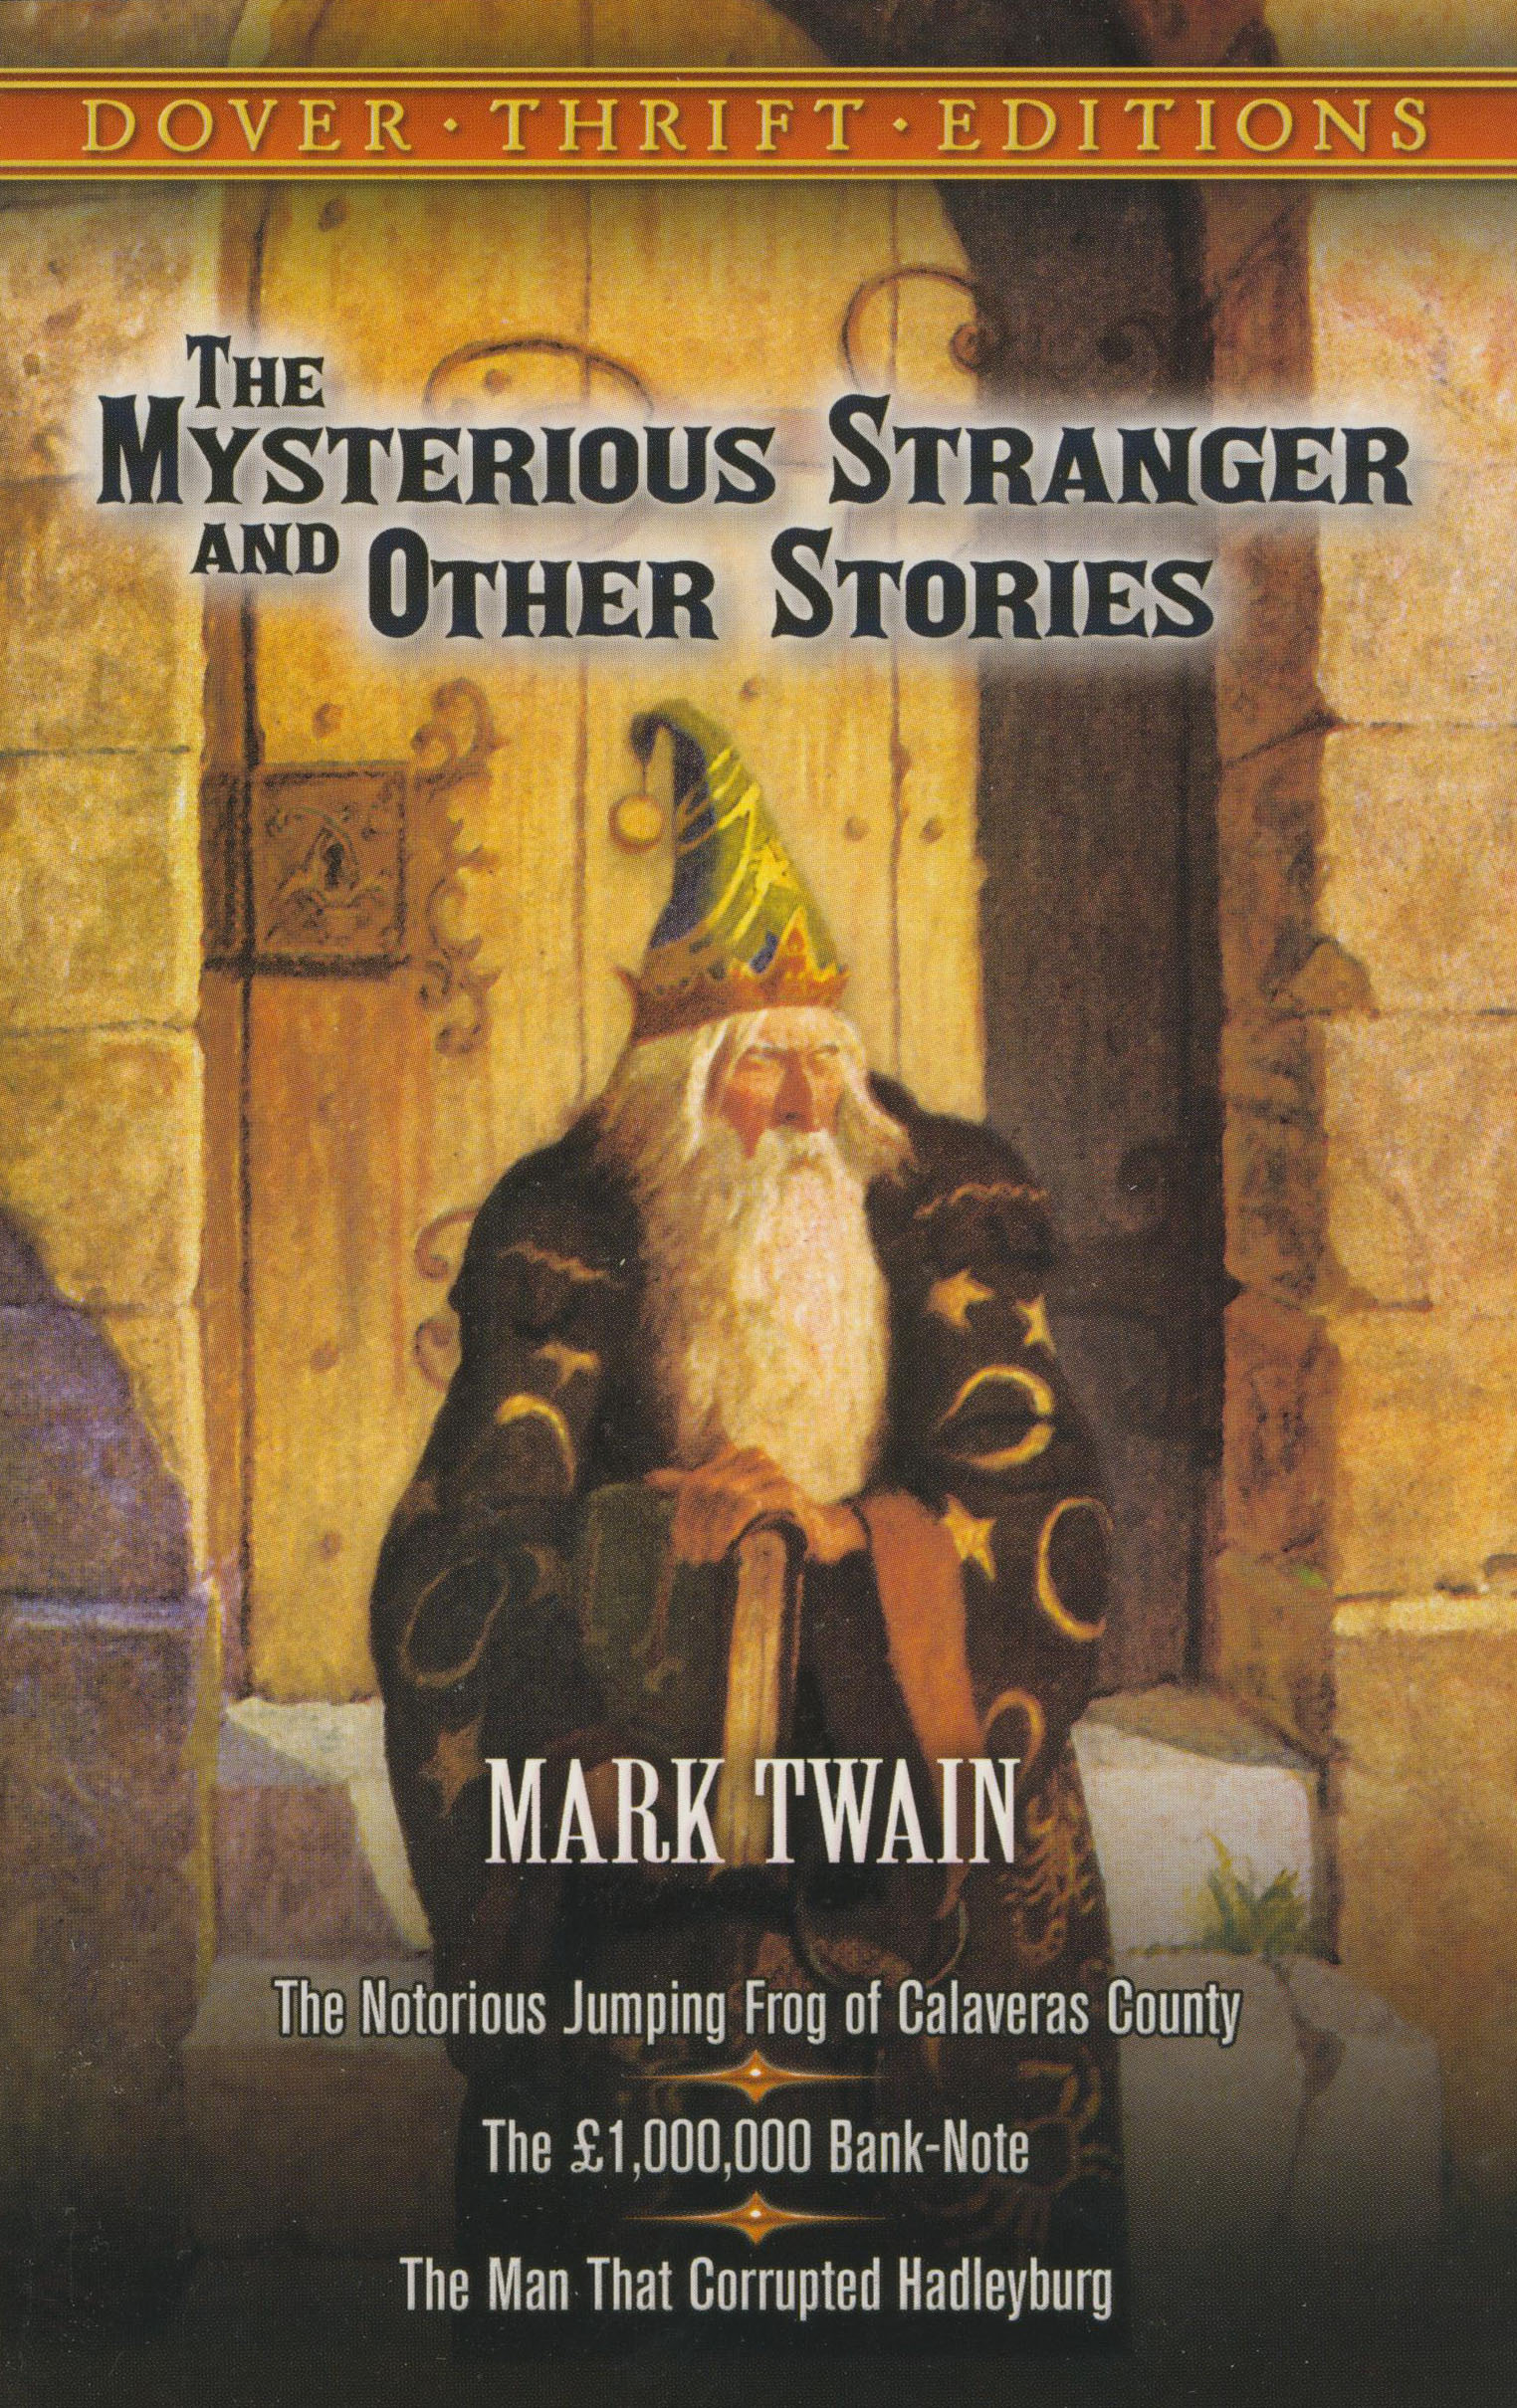 The Mysterious Stranger and Other Stories Paperback